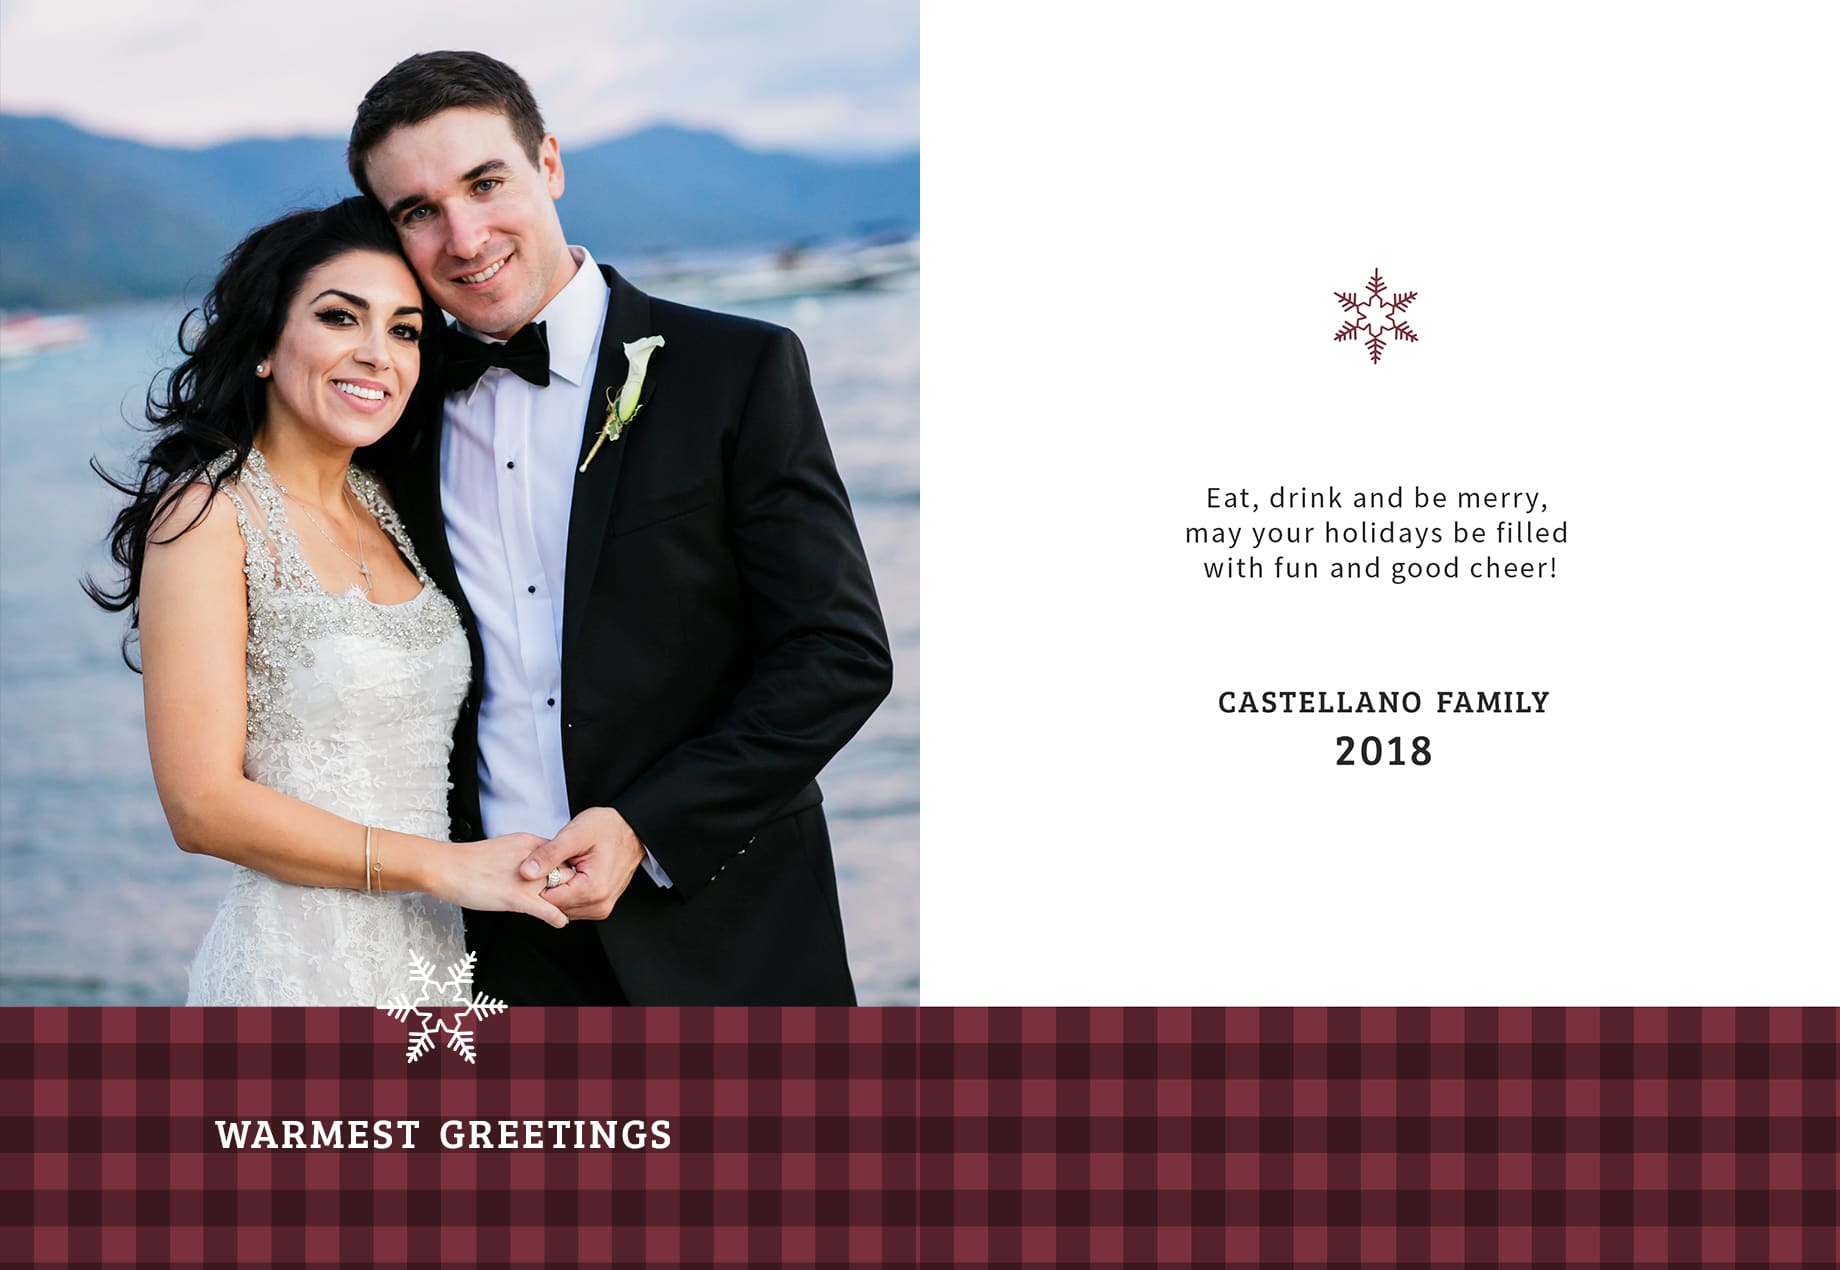 Holiday cards idea using wedding photos